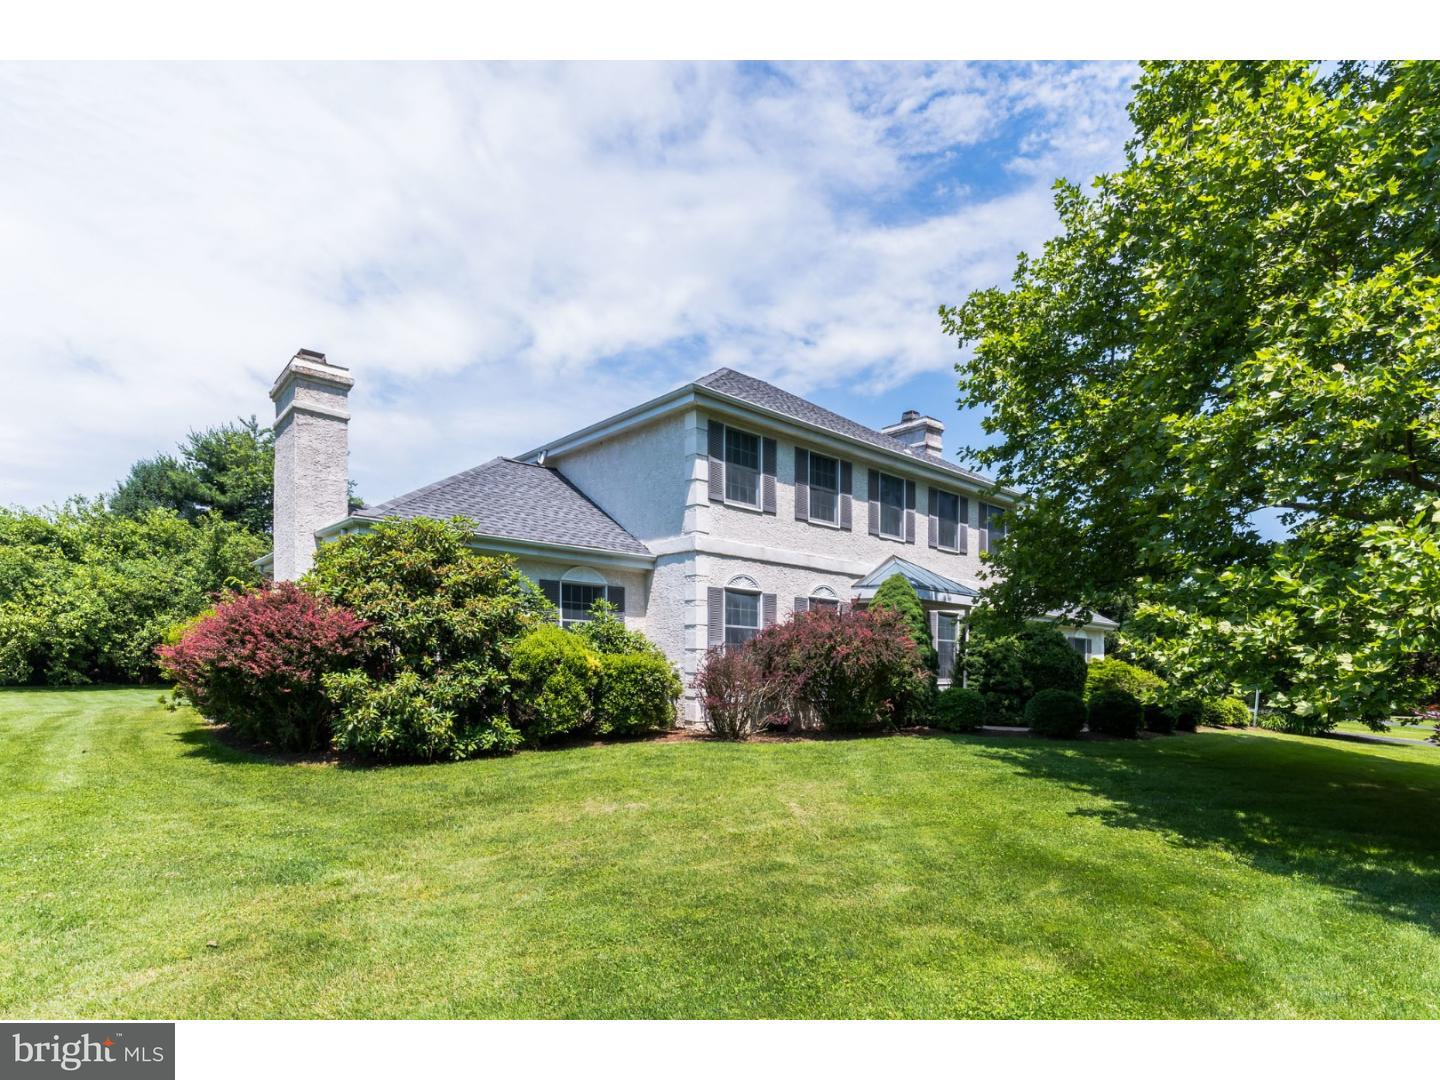 105 DEER CREEK XING, KENNETT SQUARE - Listed at $559,000, KENNETT SQUARE